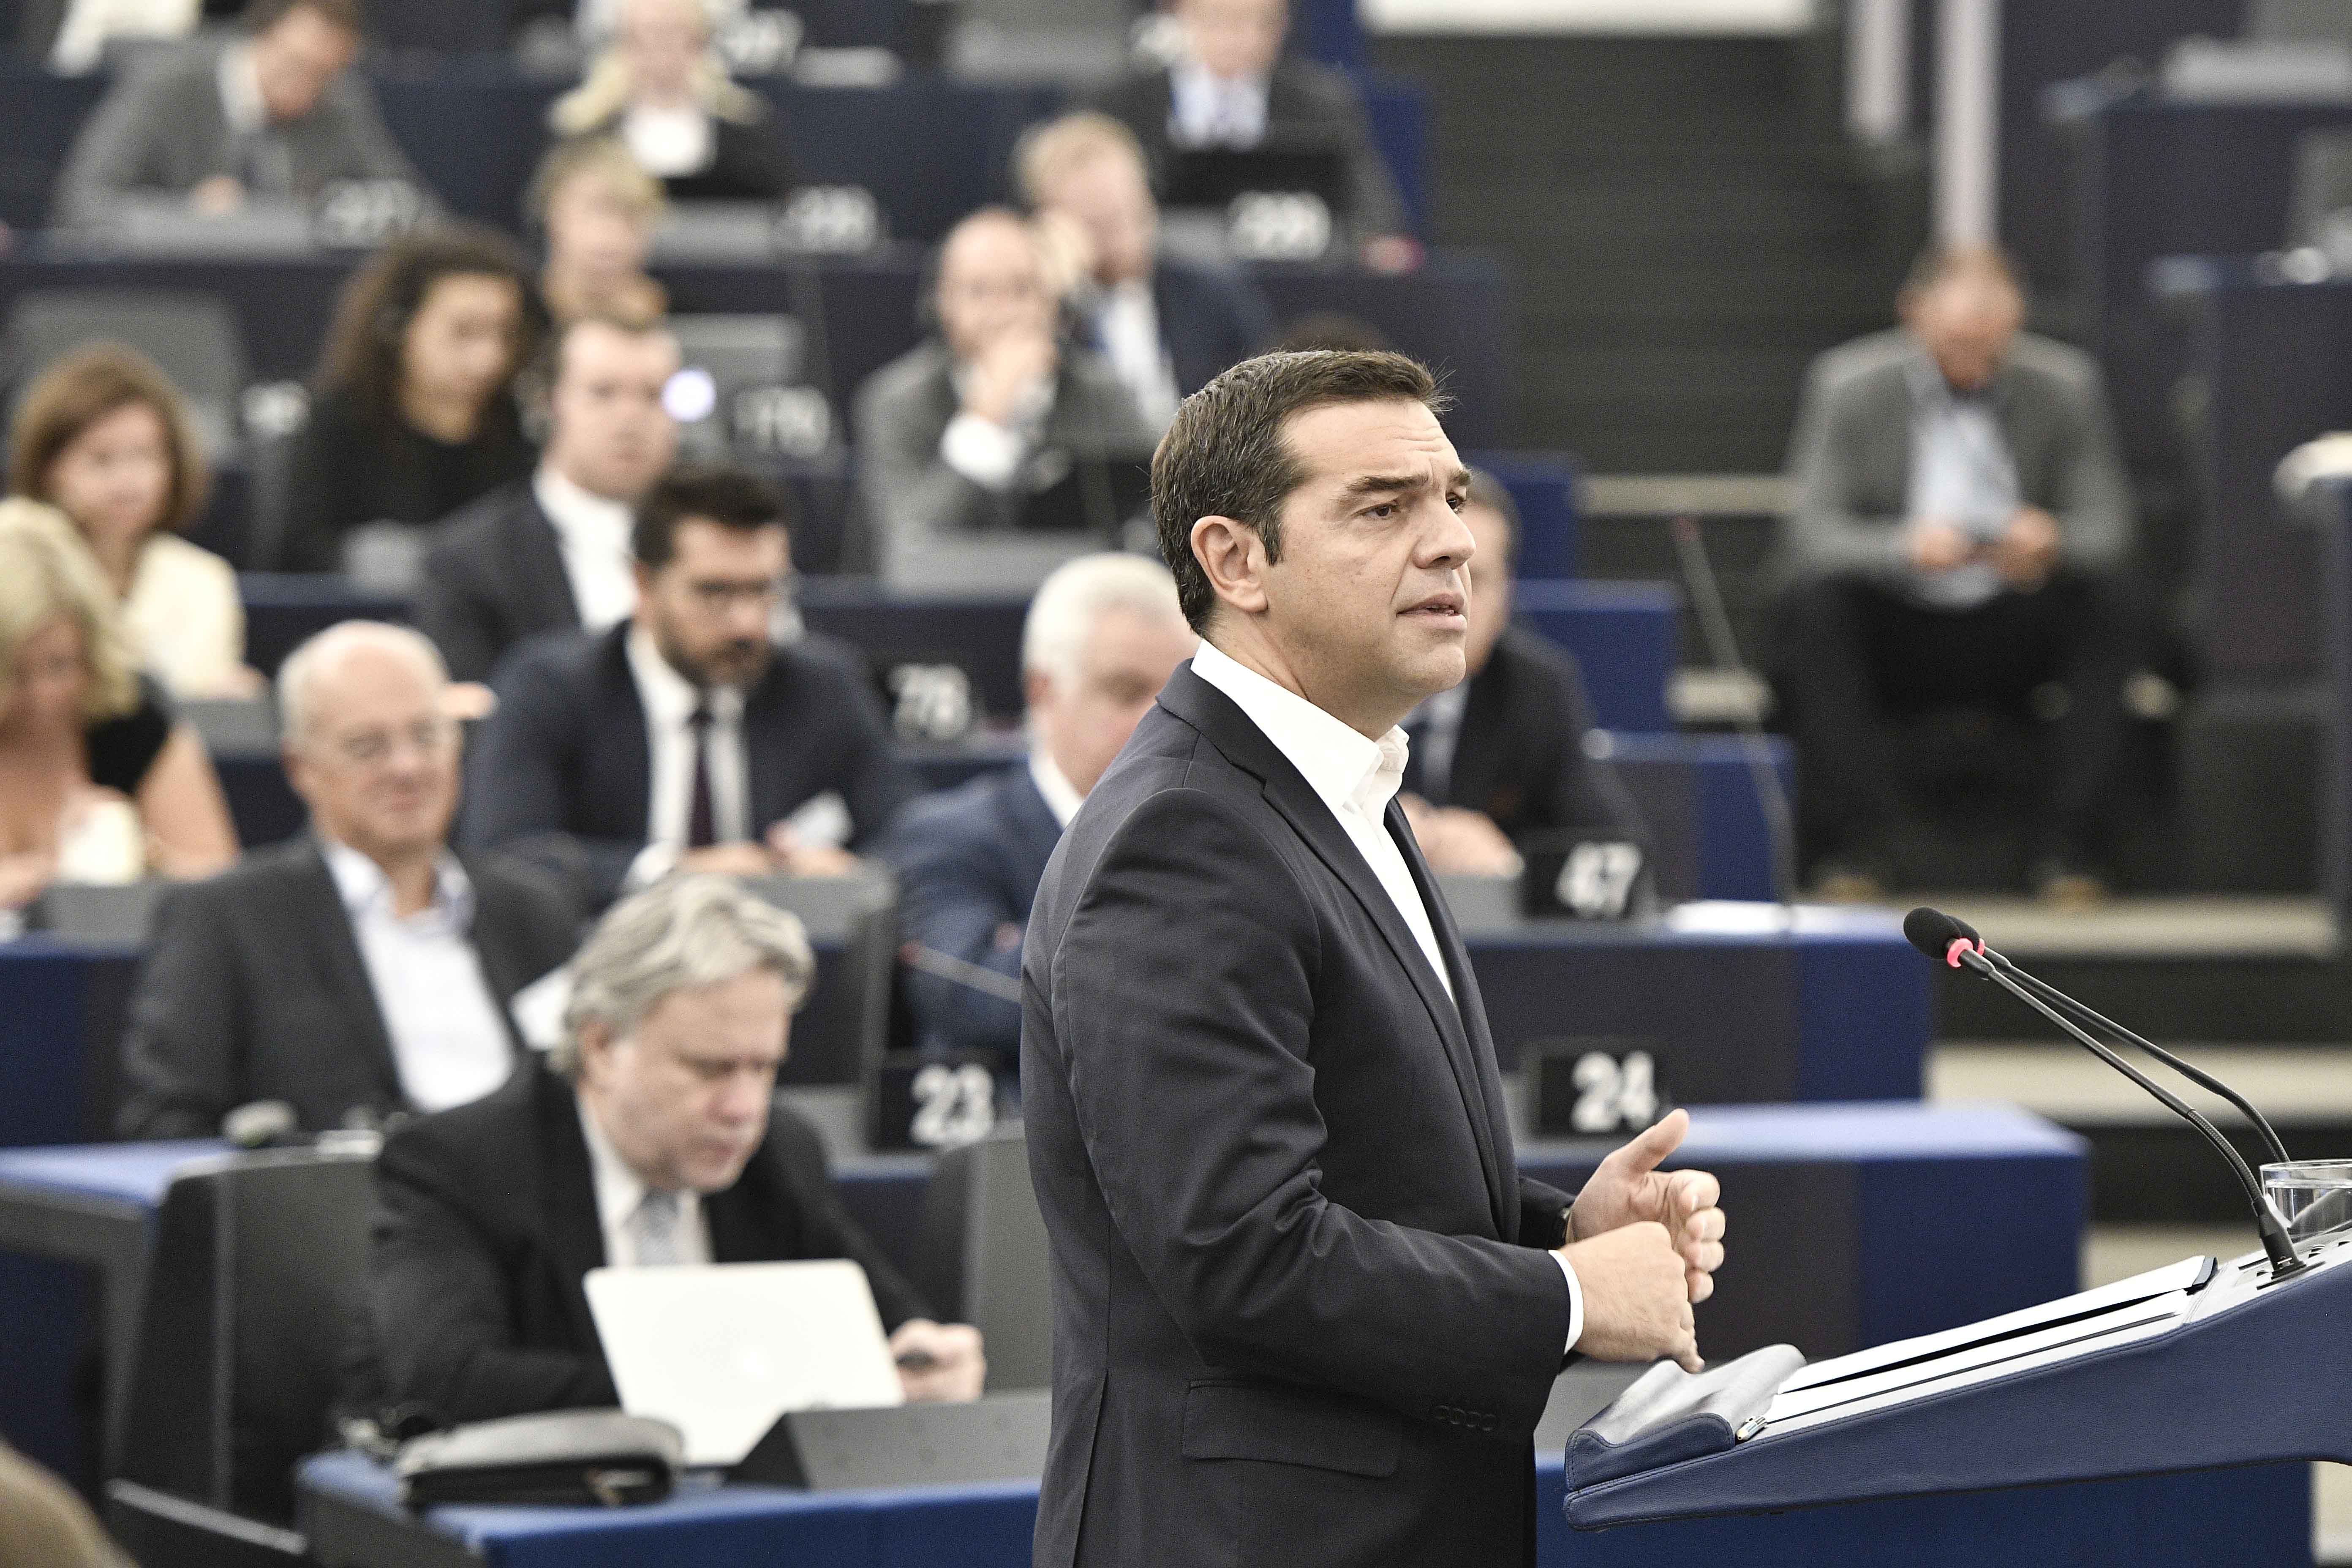 Alexis Tsipras has series of contacts in Strasbourg